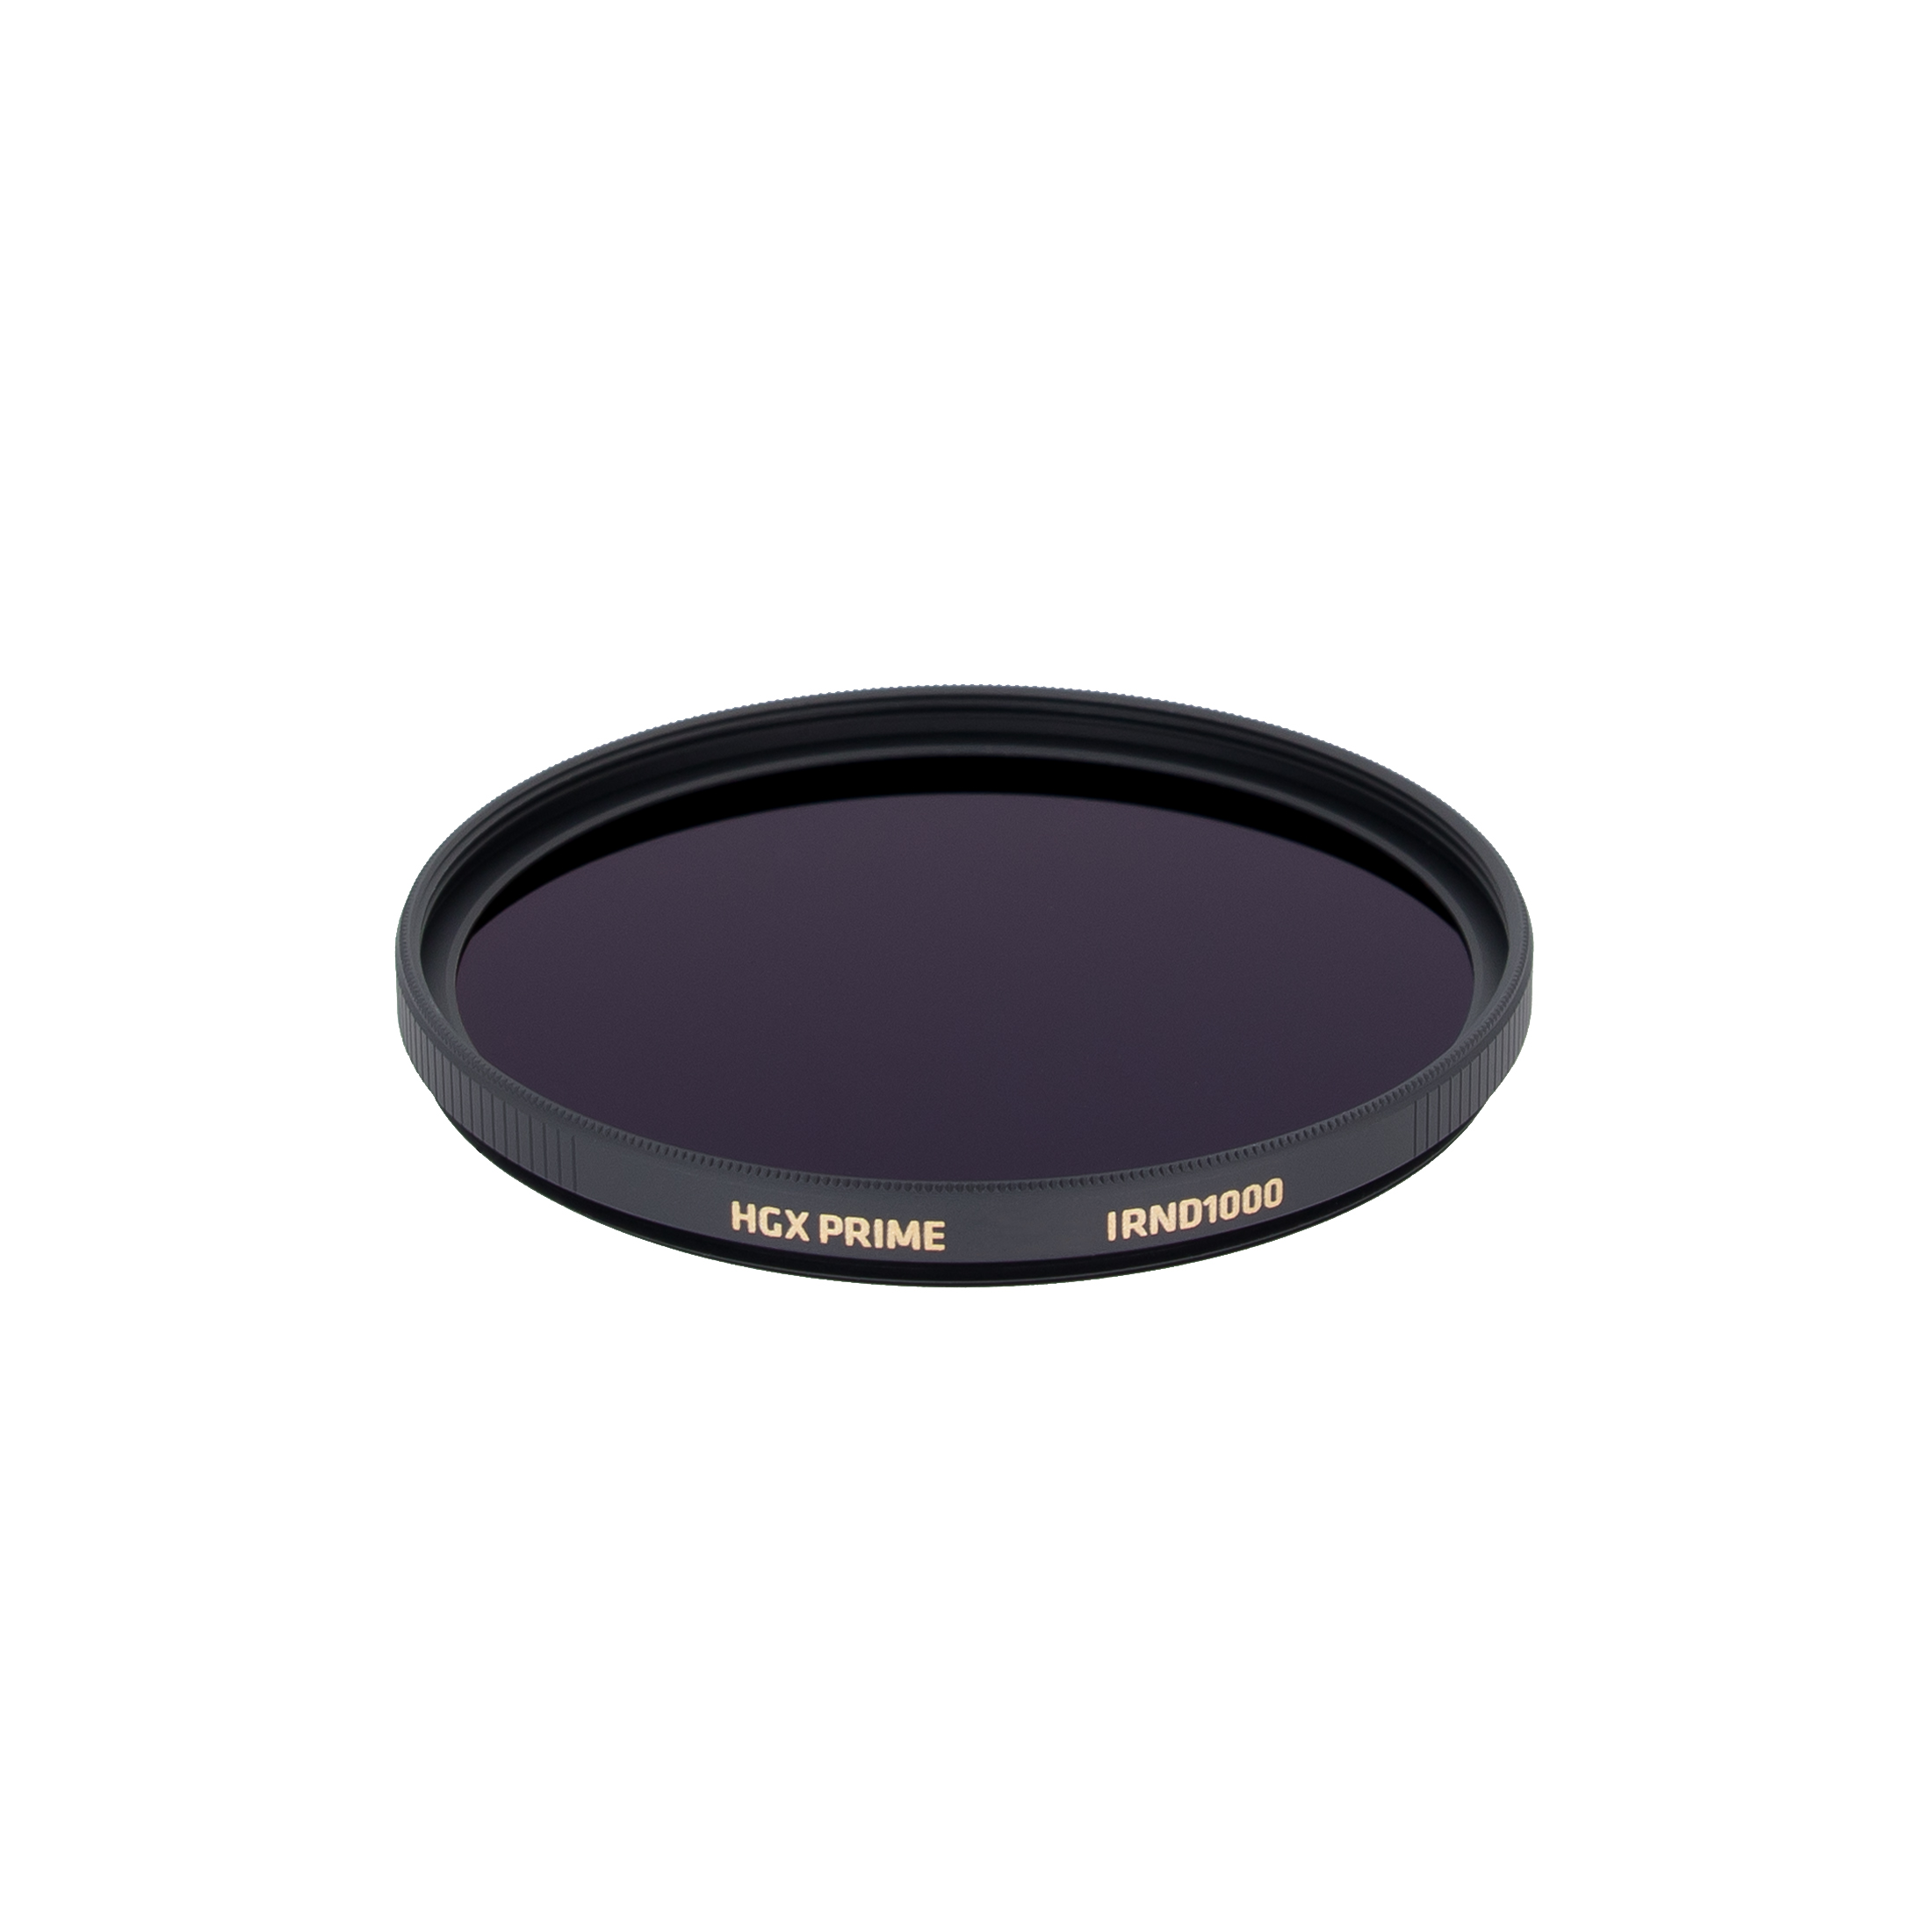 Promaster 6026 67mm IRND1000X HGX Prime Filter